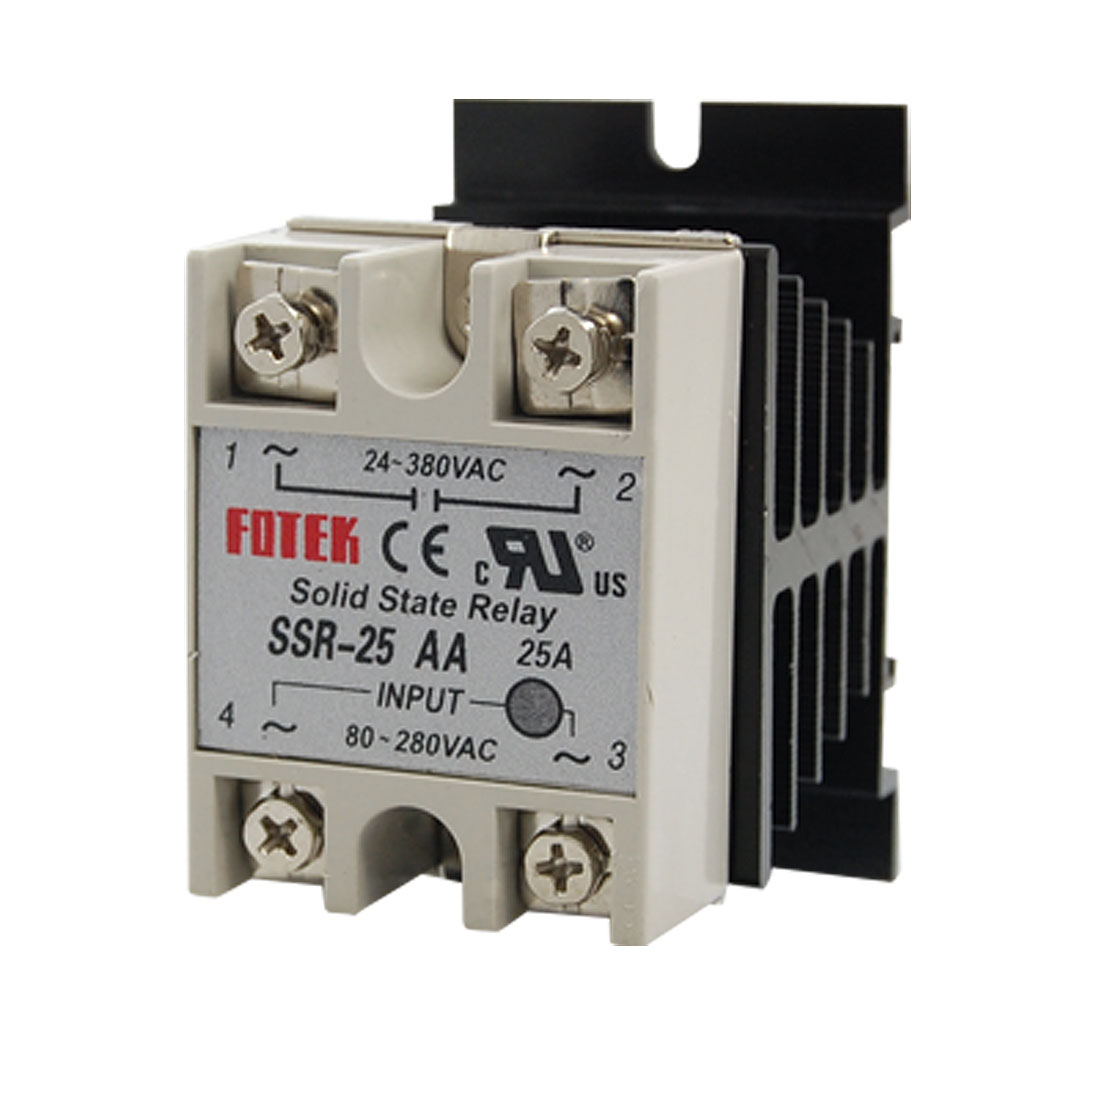 AC80-280V AC24-380V 25A AC to AC Single Phase SSR Solid State Relay w Heat Sink